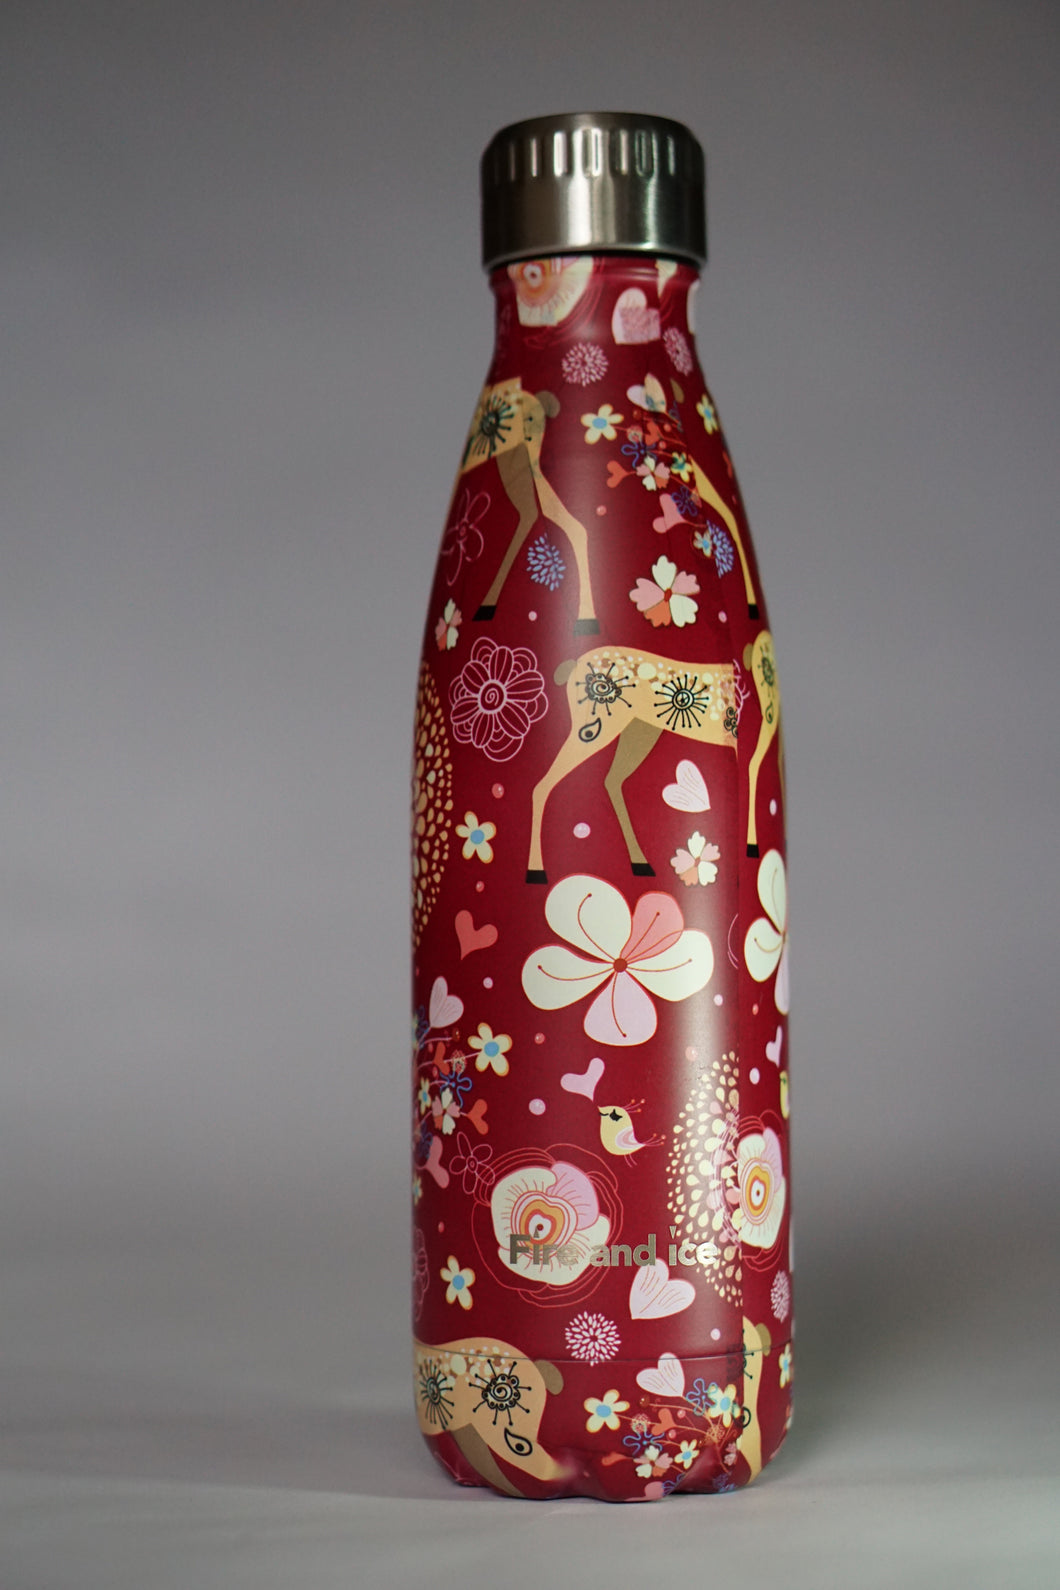 Red Reindeer - Fire and Ice bottles. Reusable bottle. BPA free. cool designs